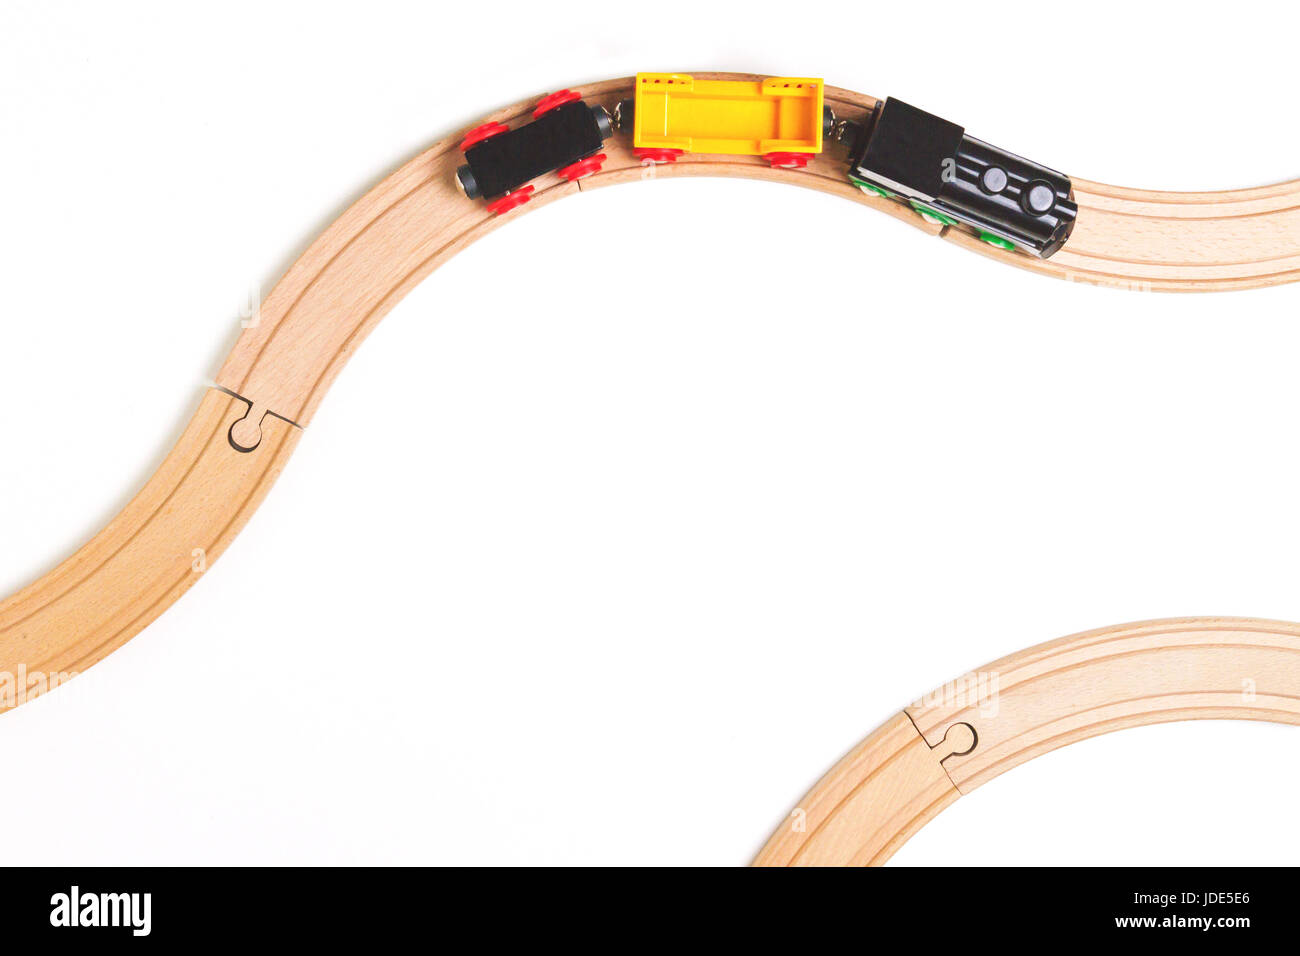 Toy train and wooden rails on white background. Top view. - Stock Image